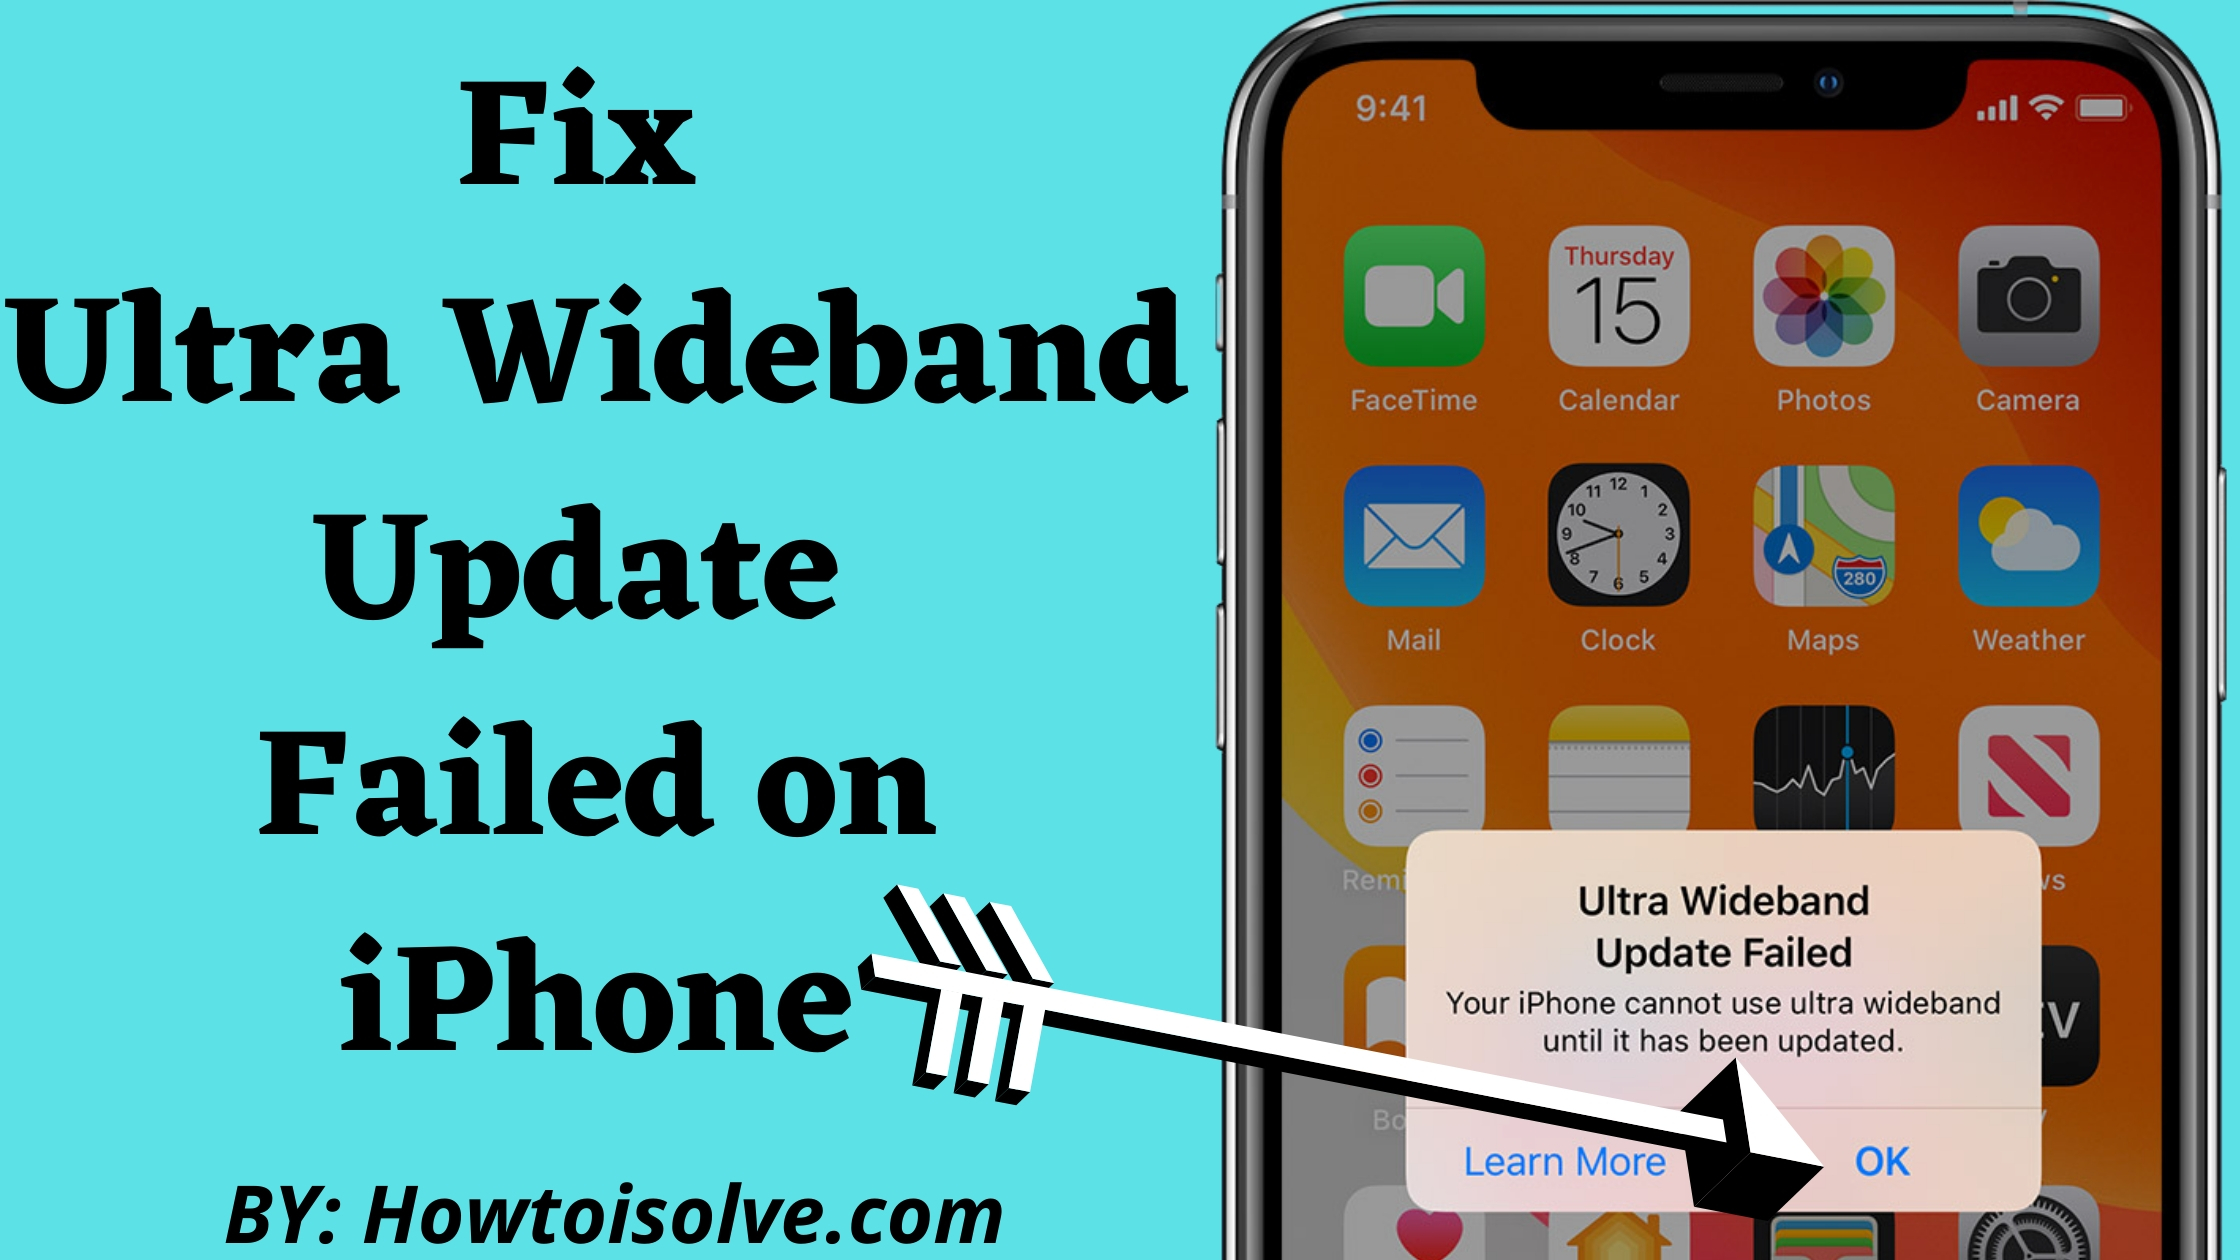 Ultra Wideband Update Failed on iPhone How to Fix